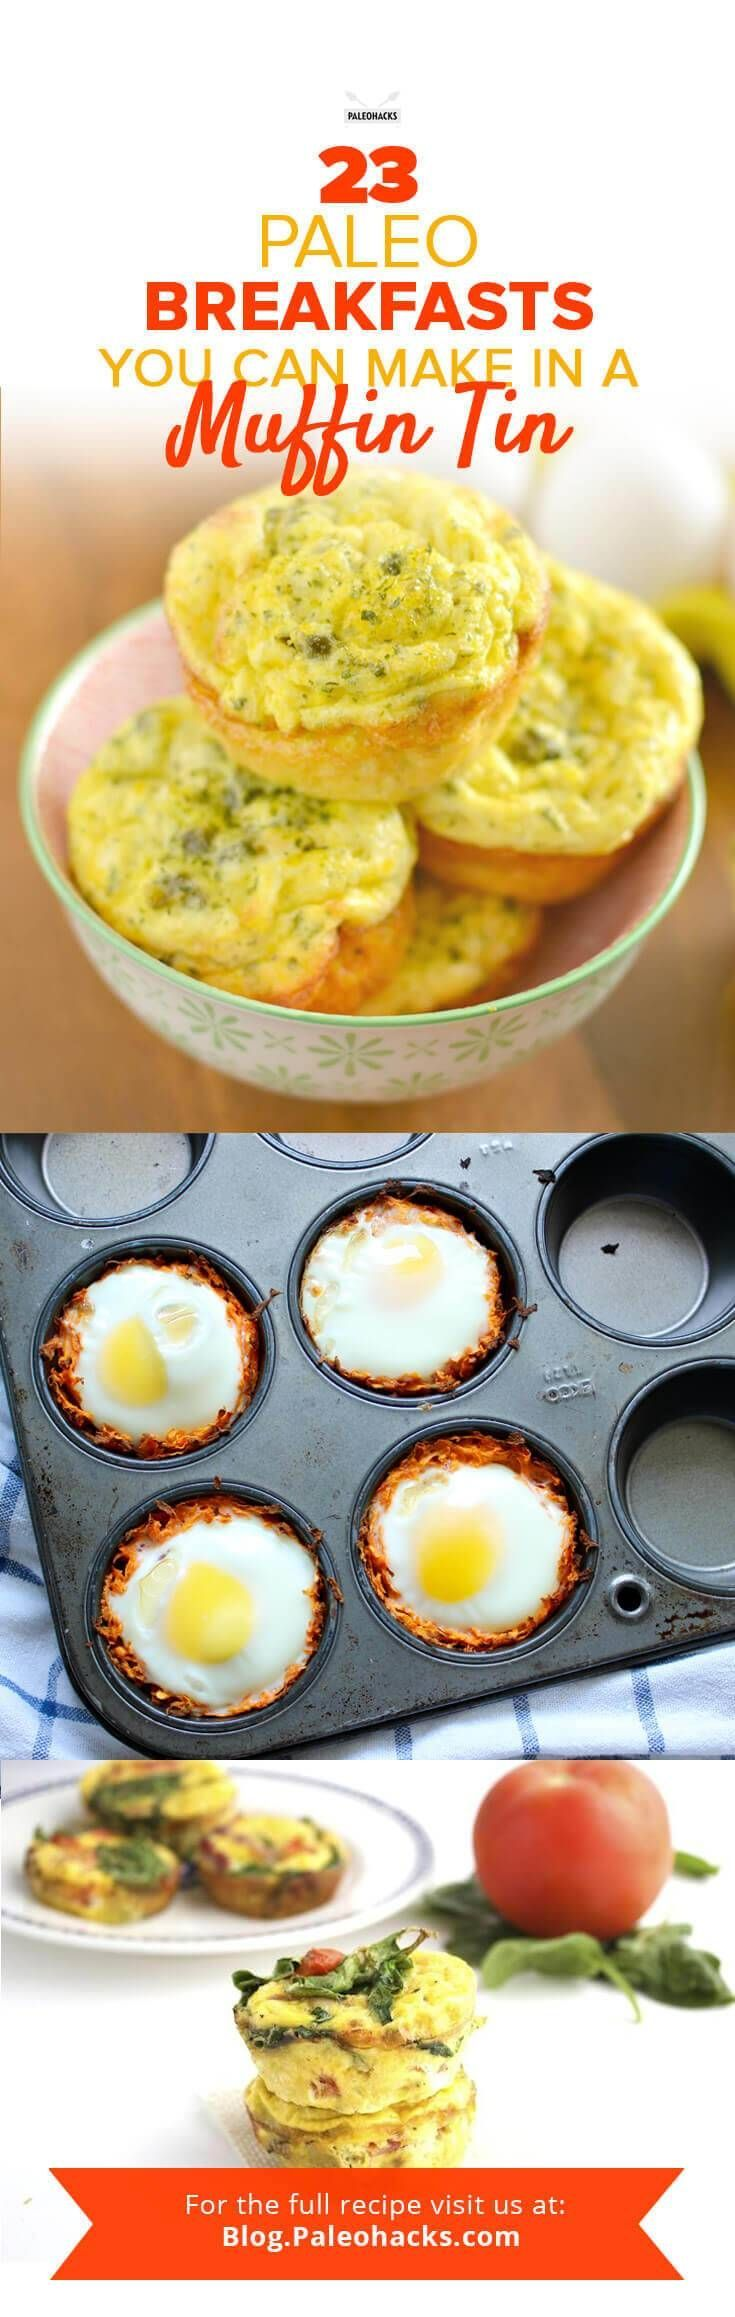 We all love a muffin in the morning—be it banana nut or blueberry—but that muffin tin can have way more to offer beyond the realm of pastries. Get the recipes here: http://paleo.co/muffintinbrekkys